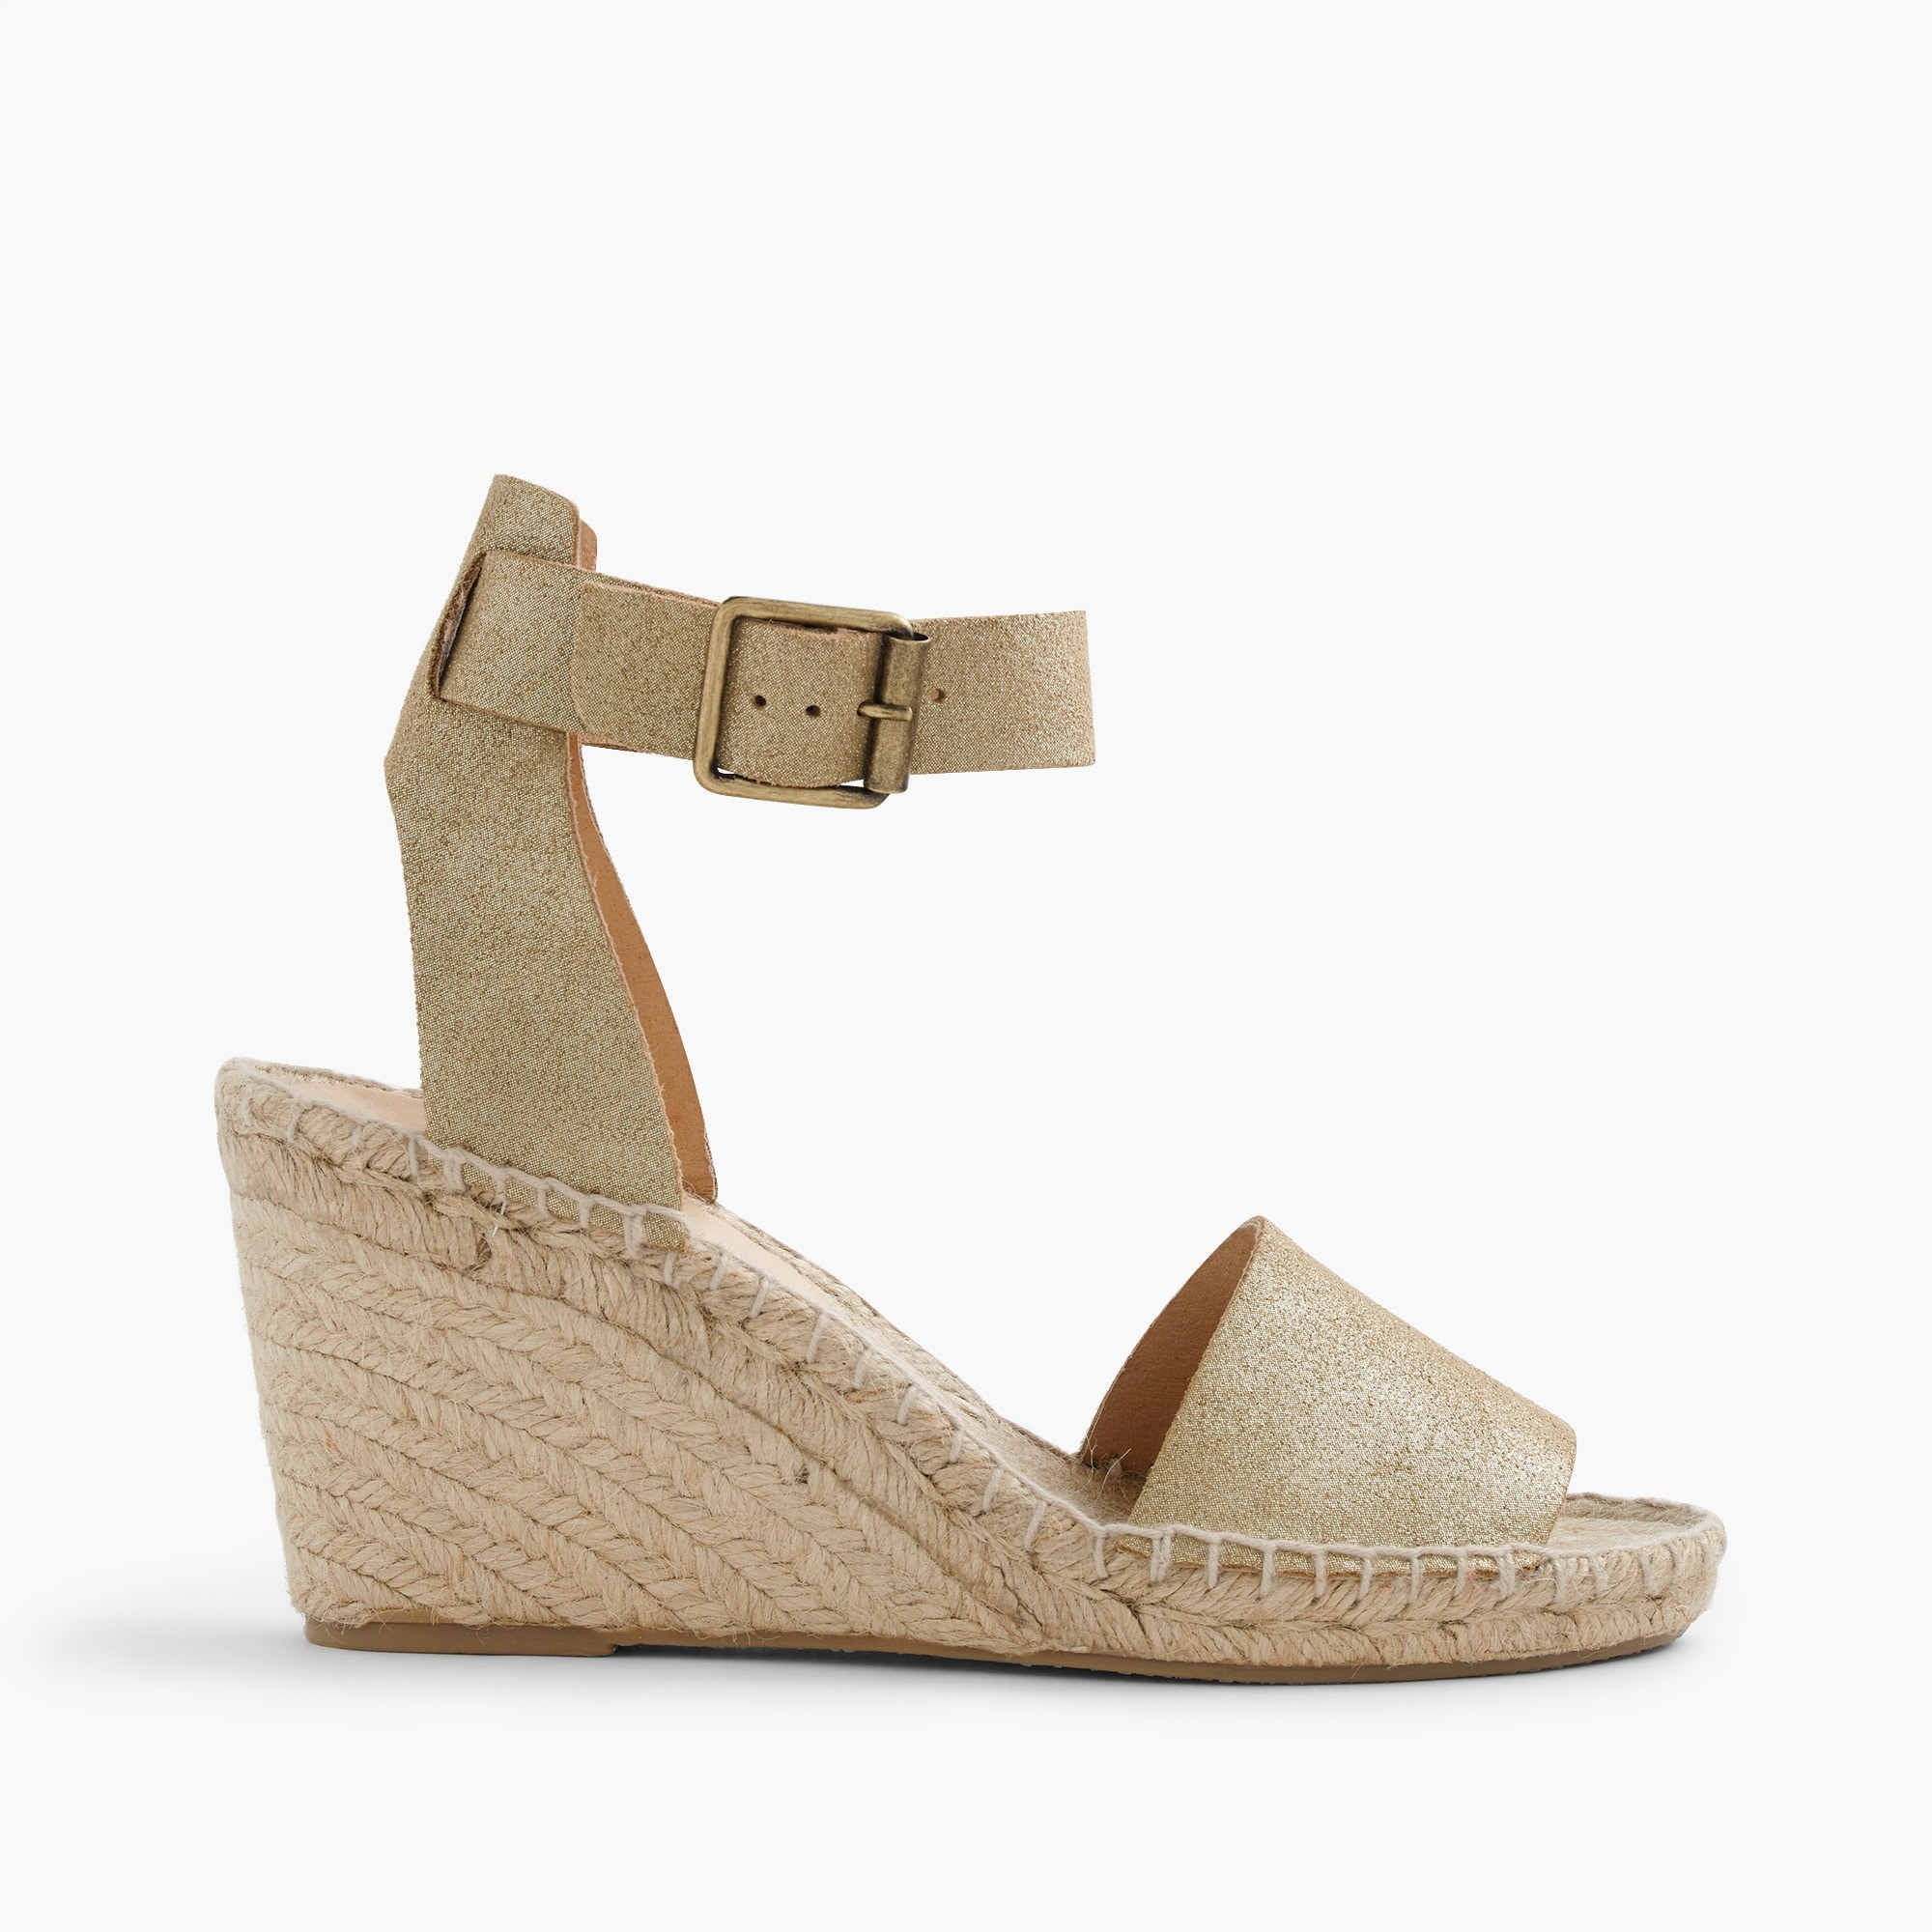 corsica espadrille wedges in metallic suede : women espadrilles